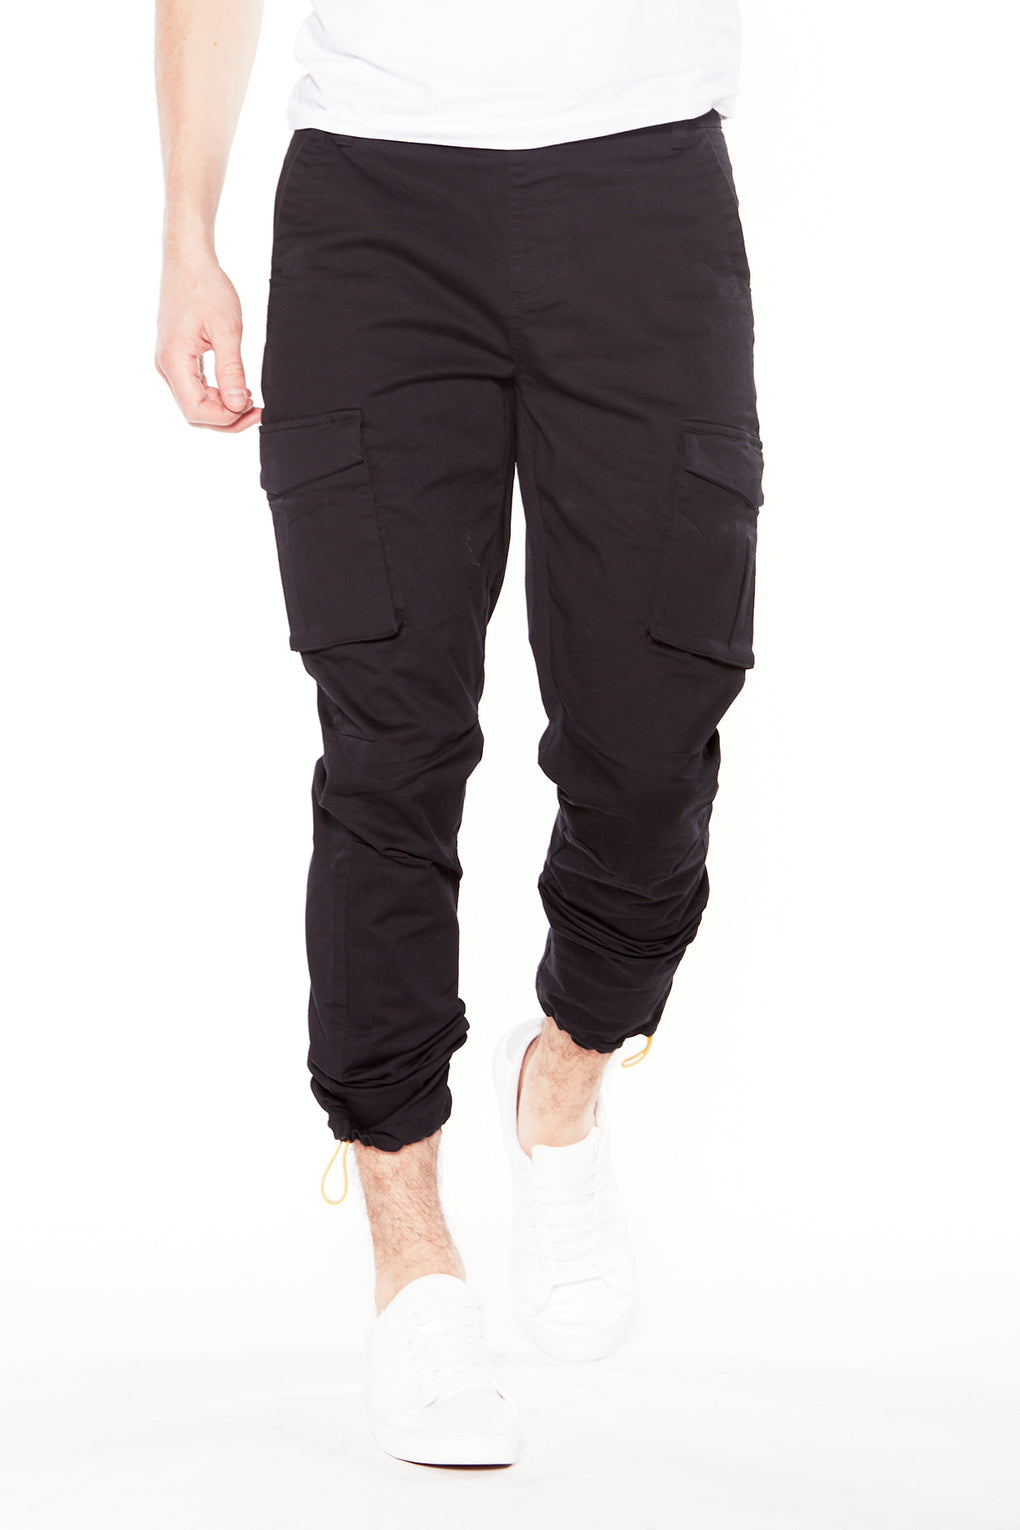 DEAN - Pull On Slim Cut Cargo Chinos (DEAN-FST Black)